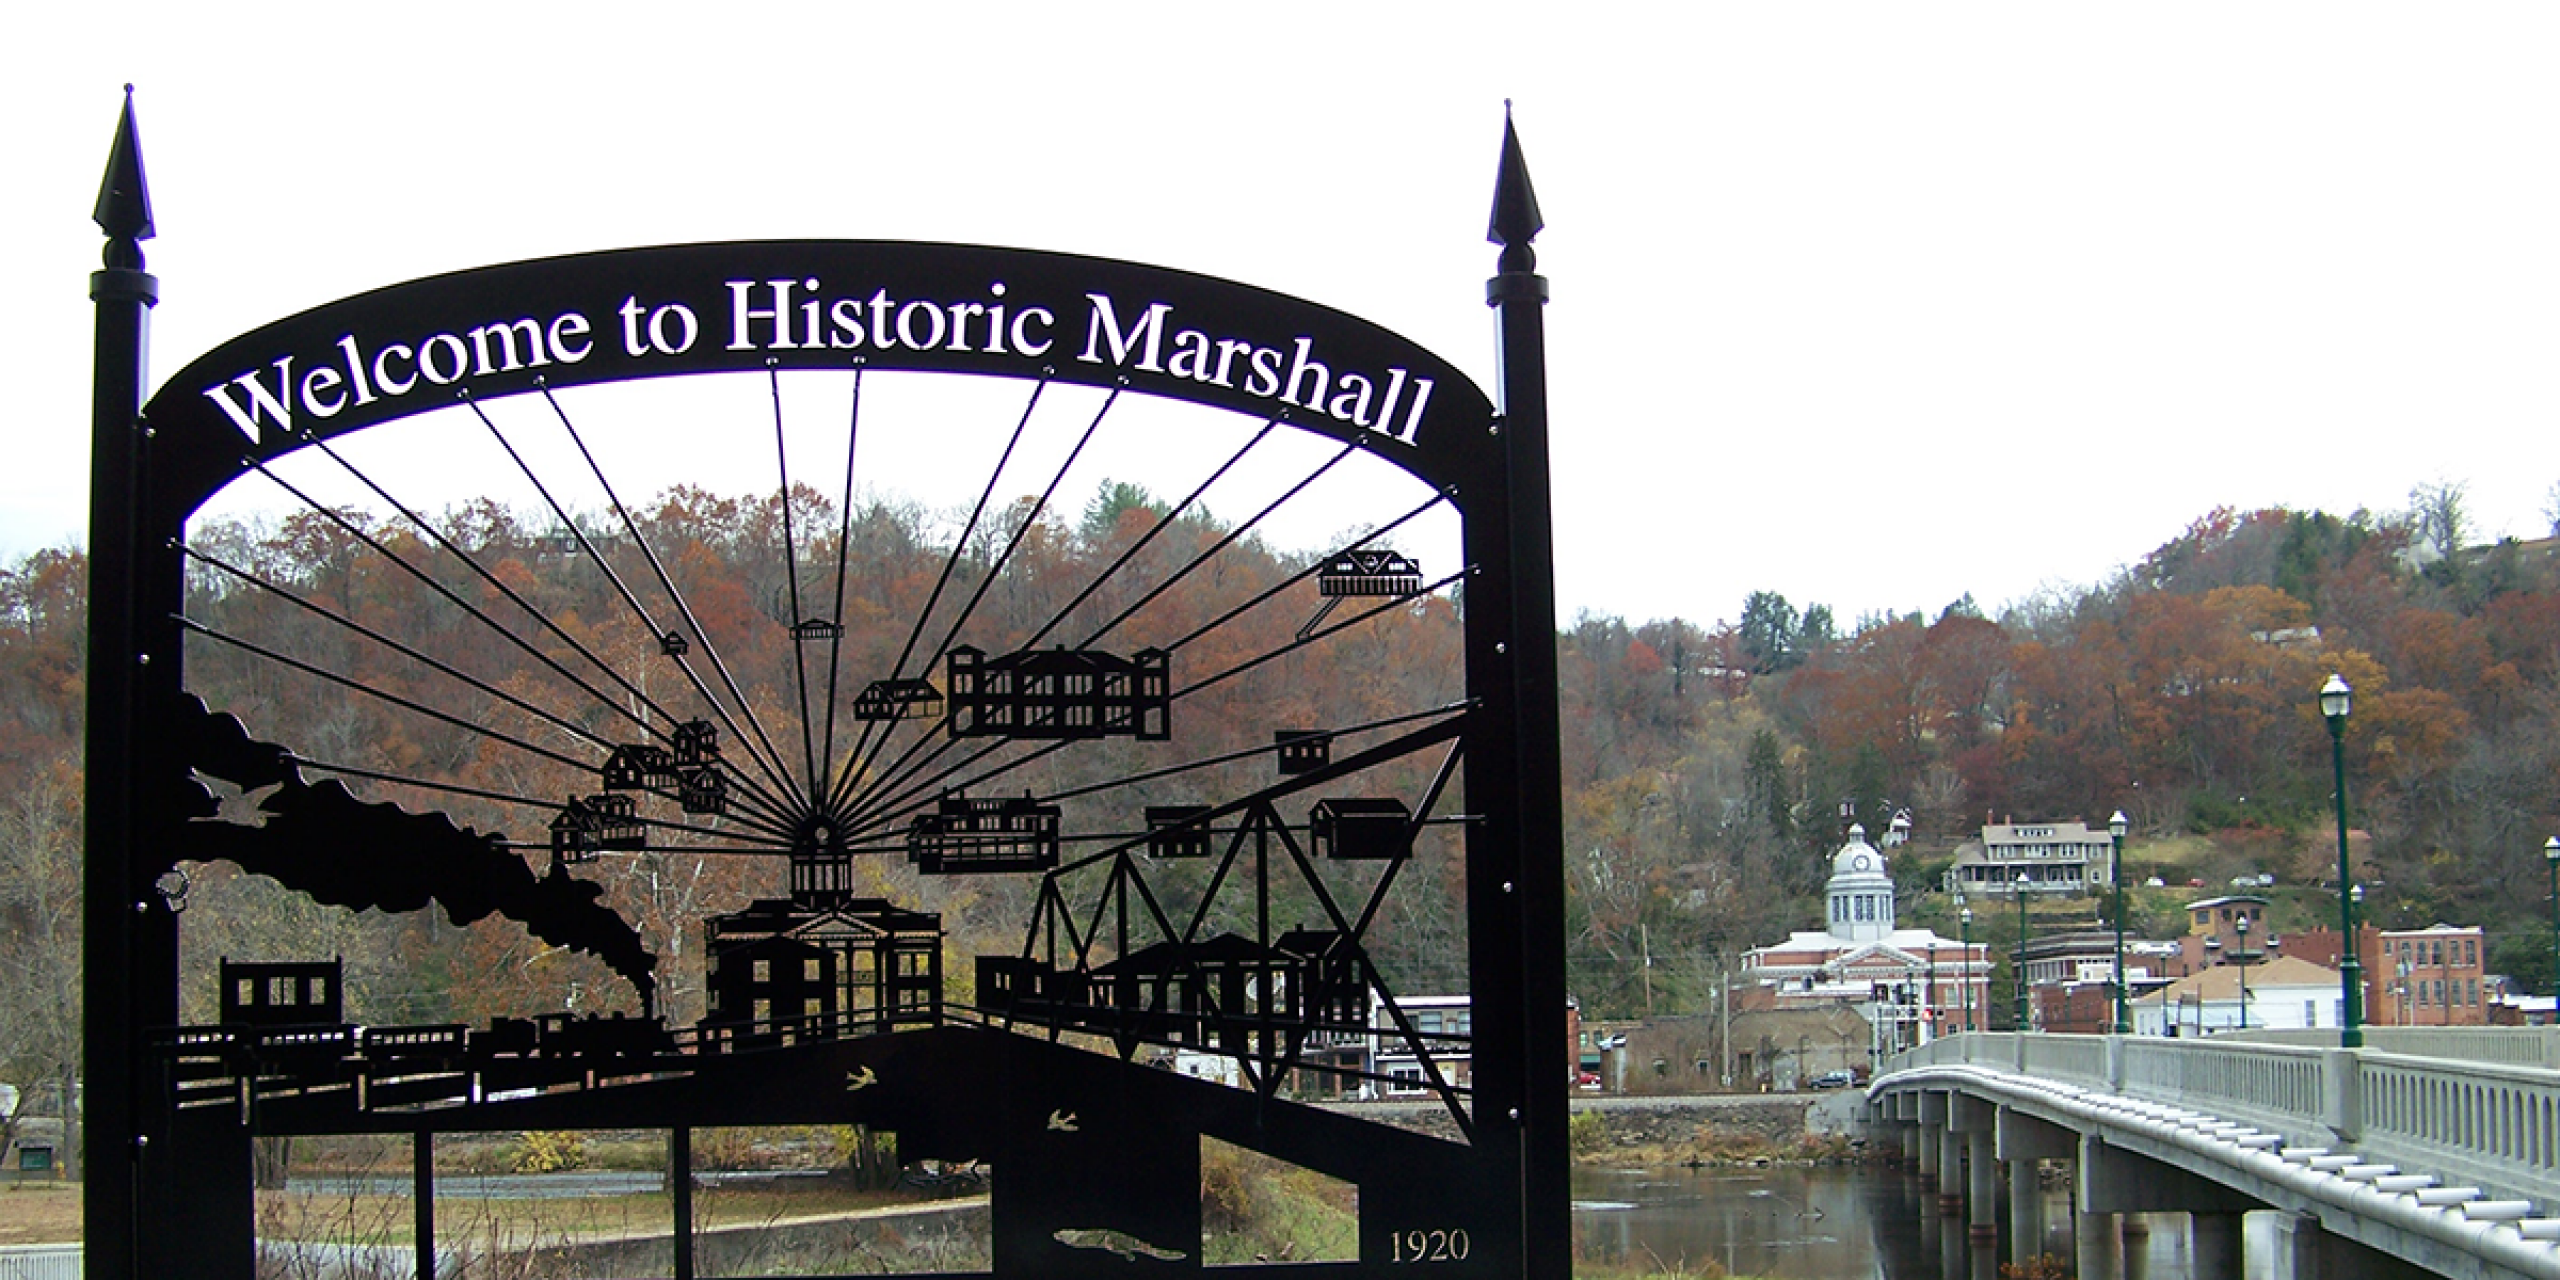 A view of Marshall, N.C. from across the French Broad River.